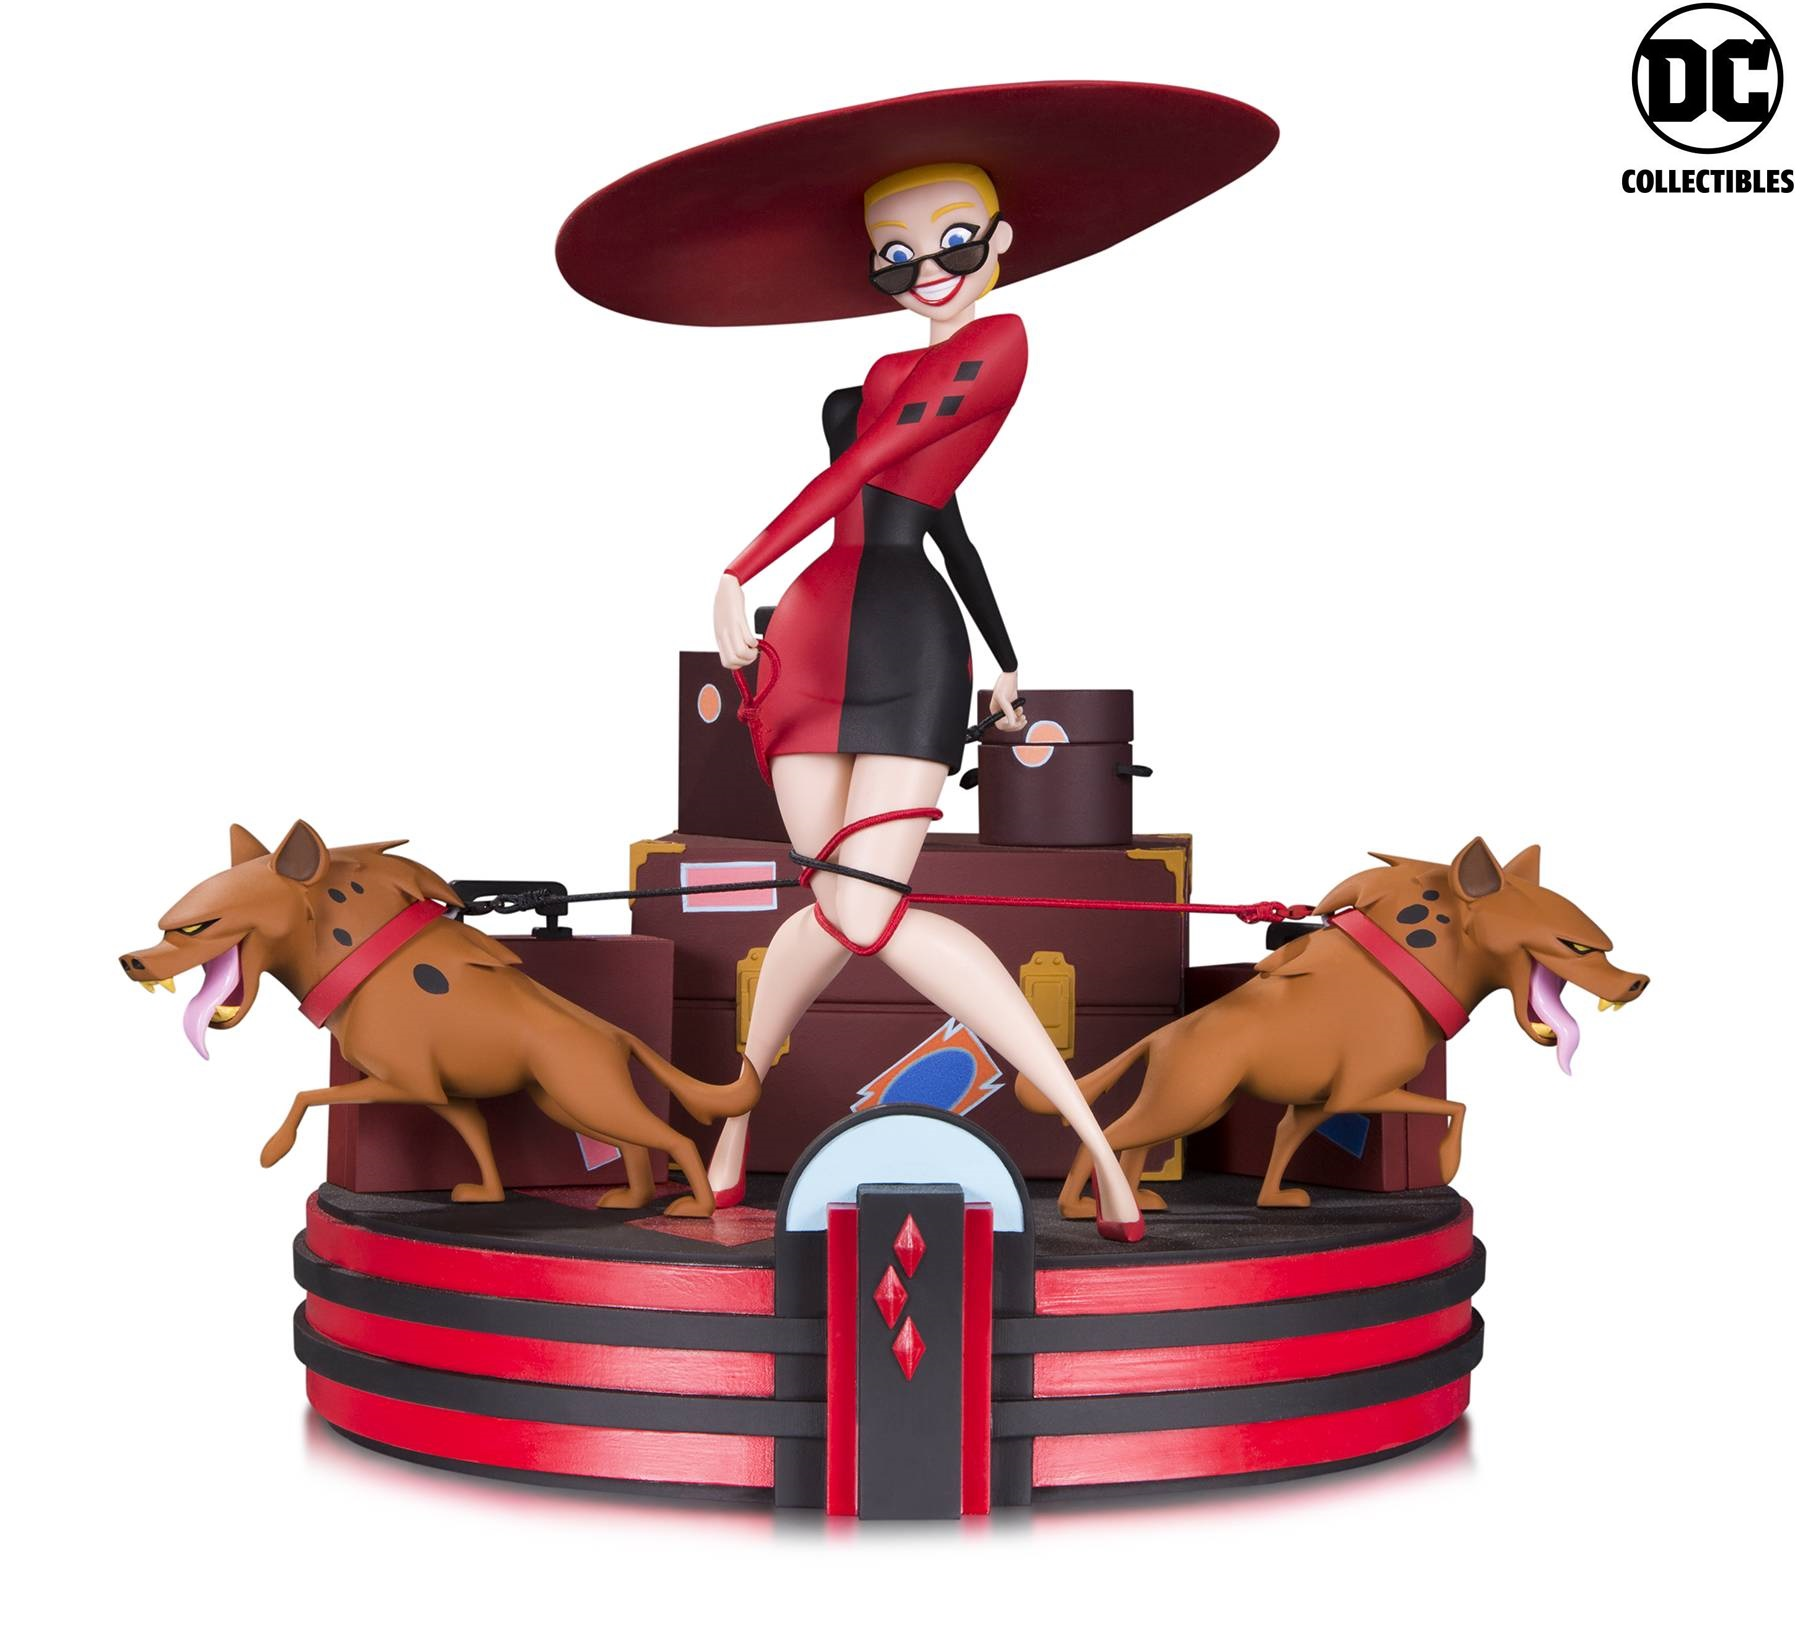 Pre-Order DC Comics Harley Quinn Harley's Holiday Statue